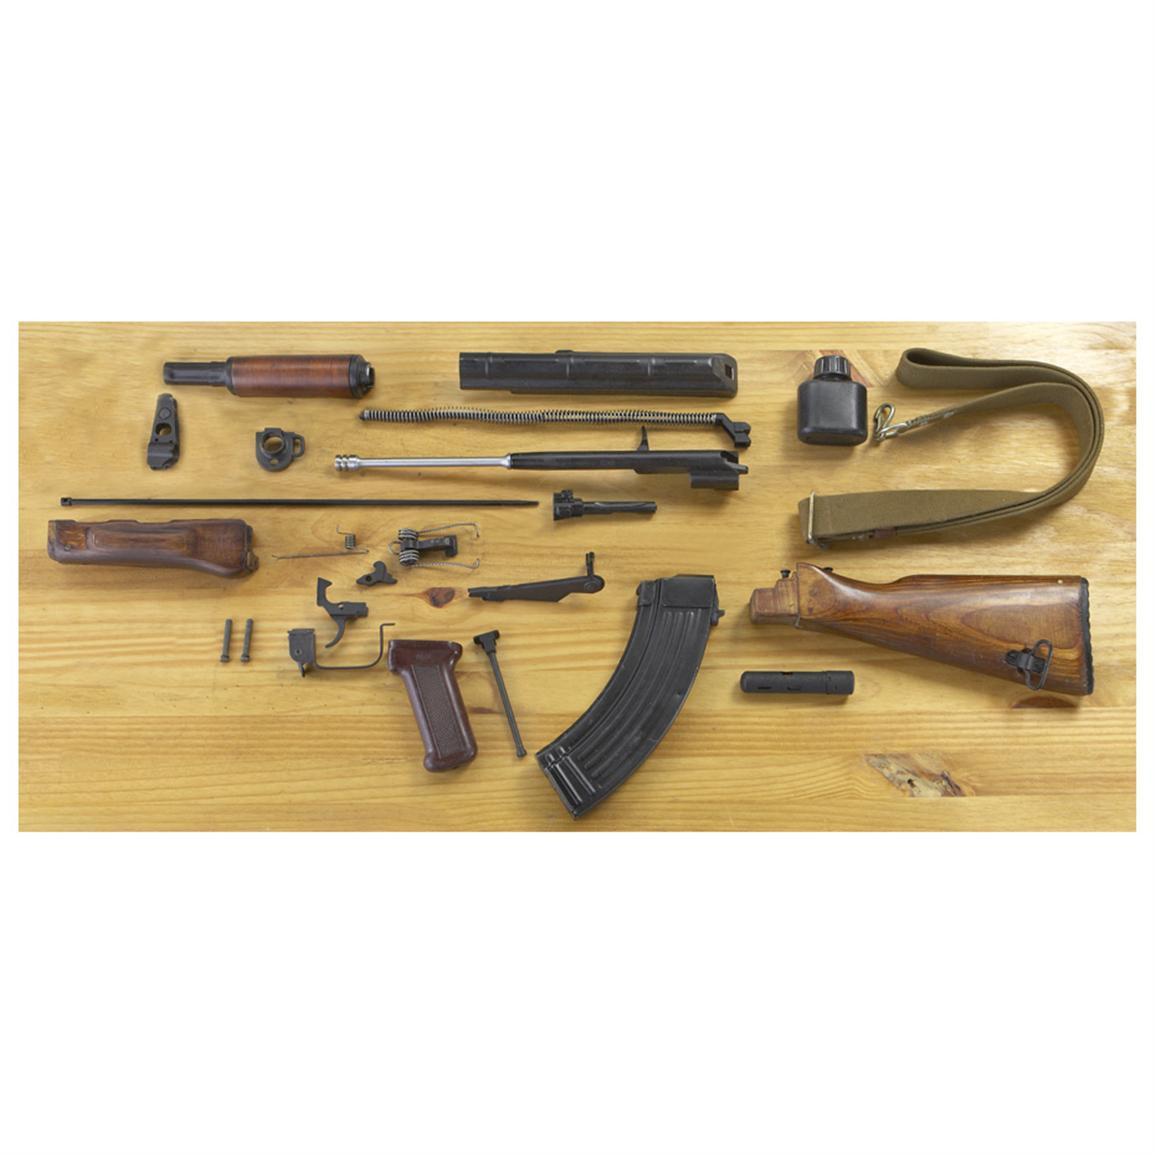 New Bulgarian AK-47 Replacement Parts Kit